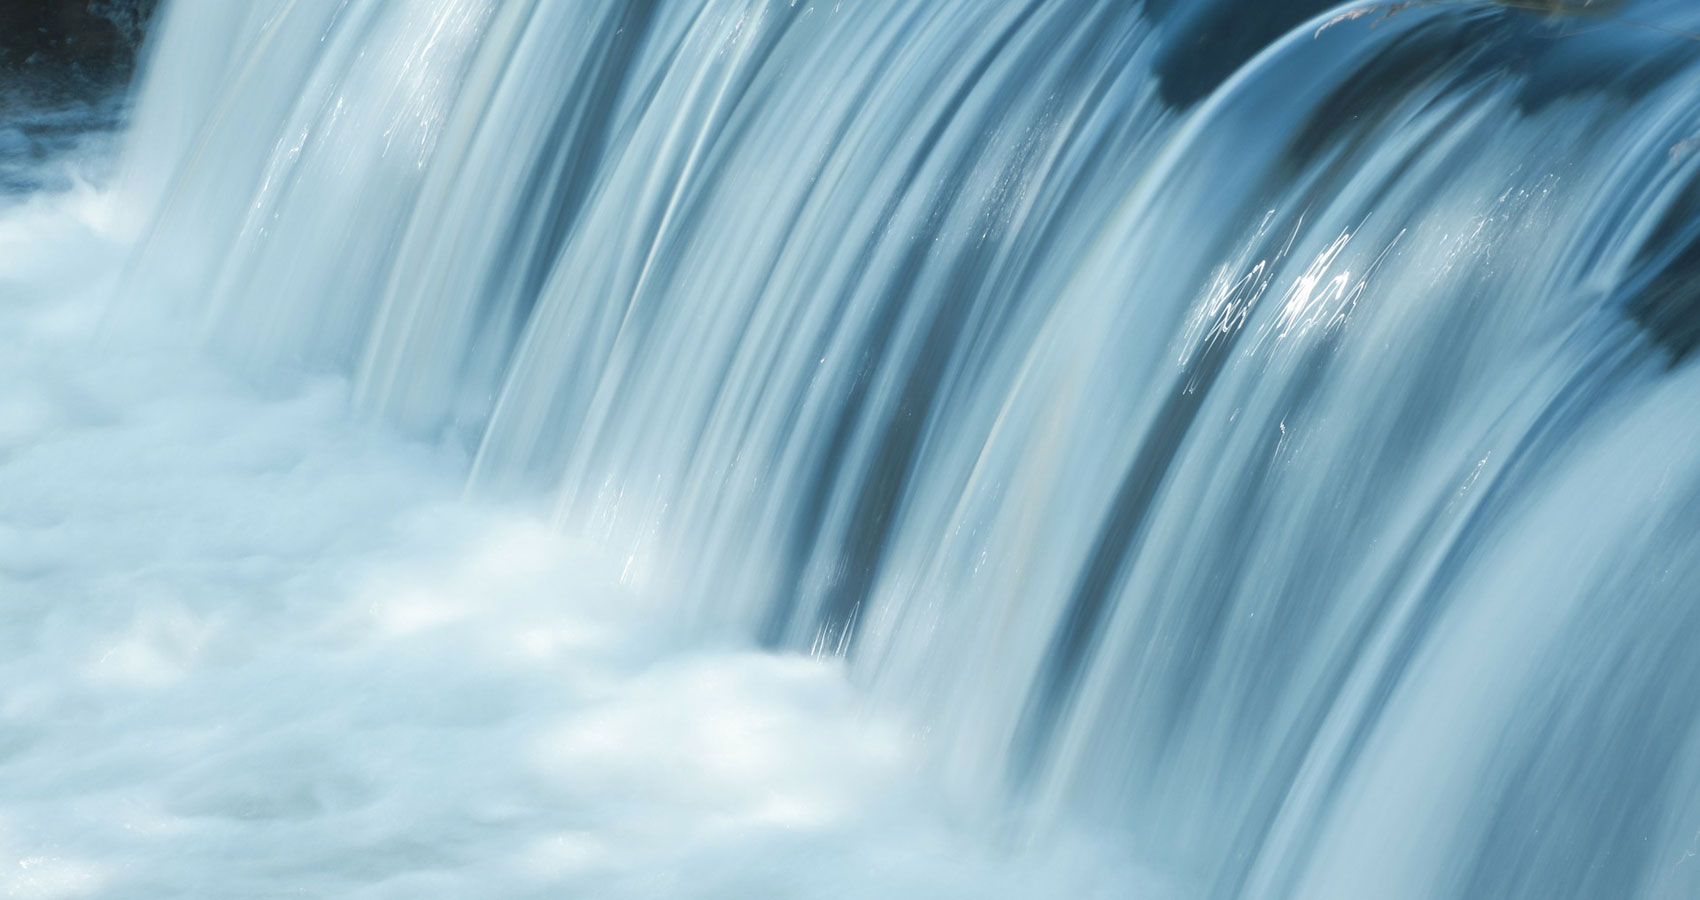 Waterfalls written by L.M. Giannone at Spillwords.com